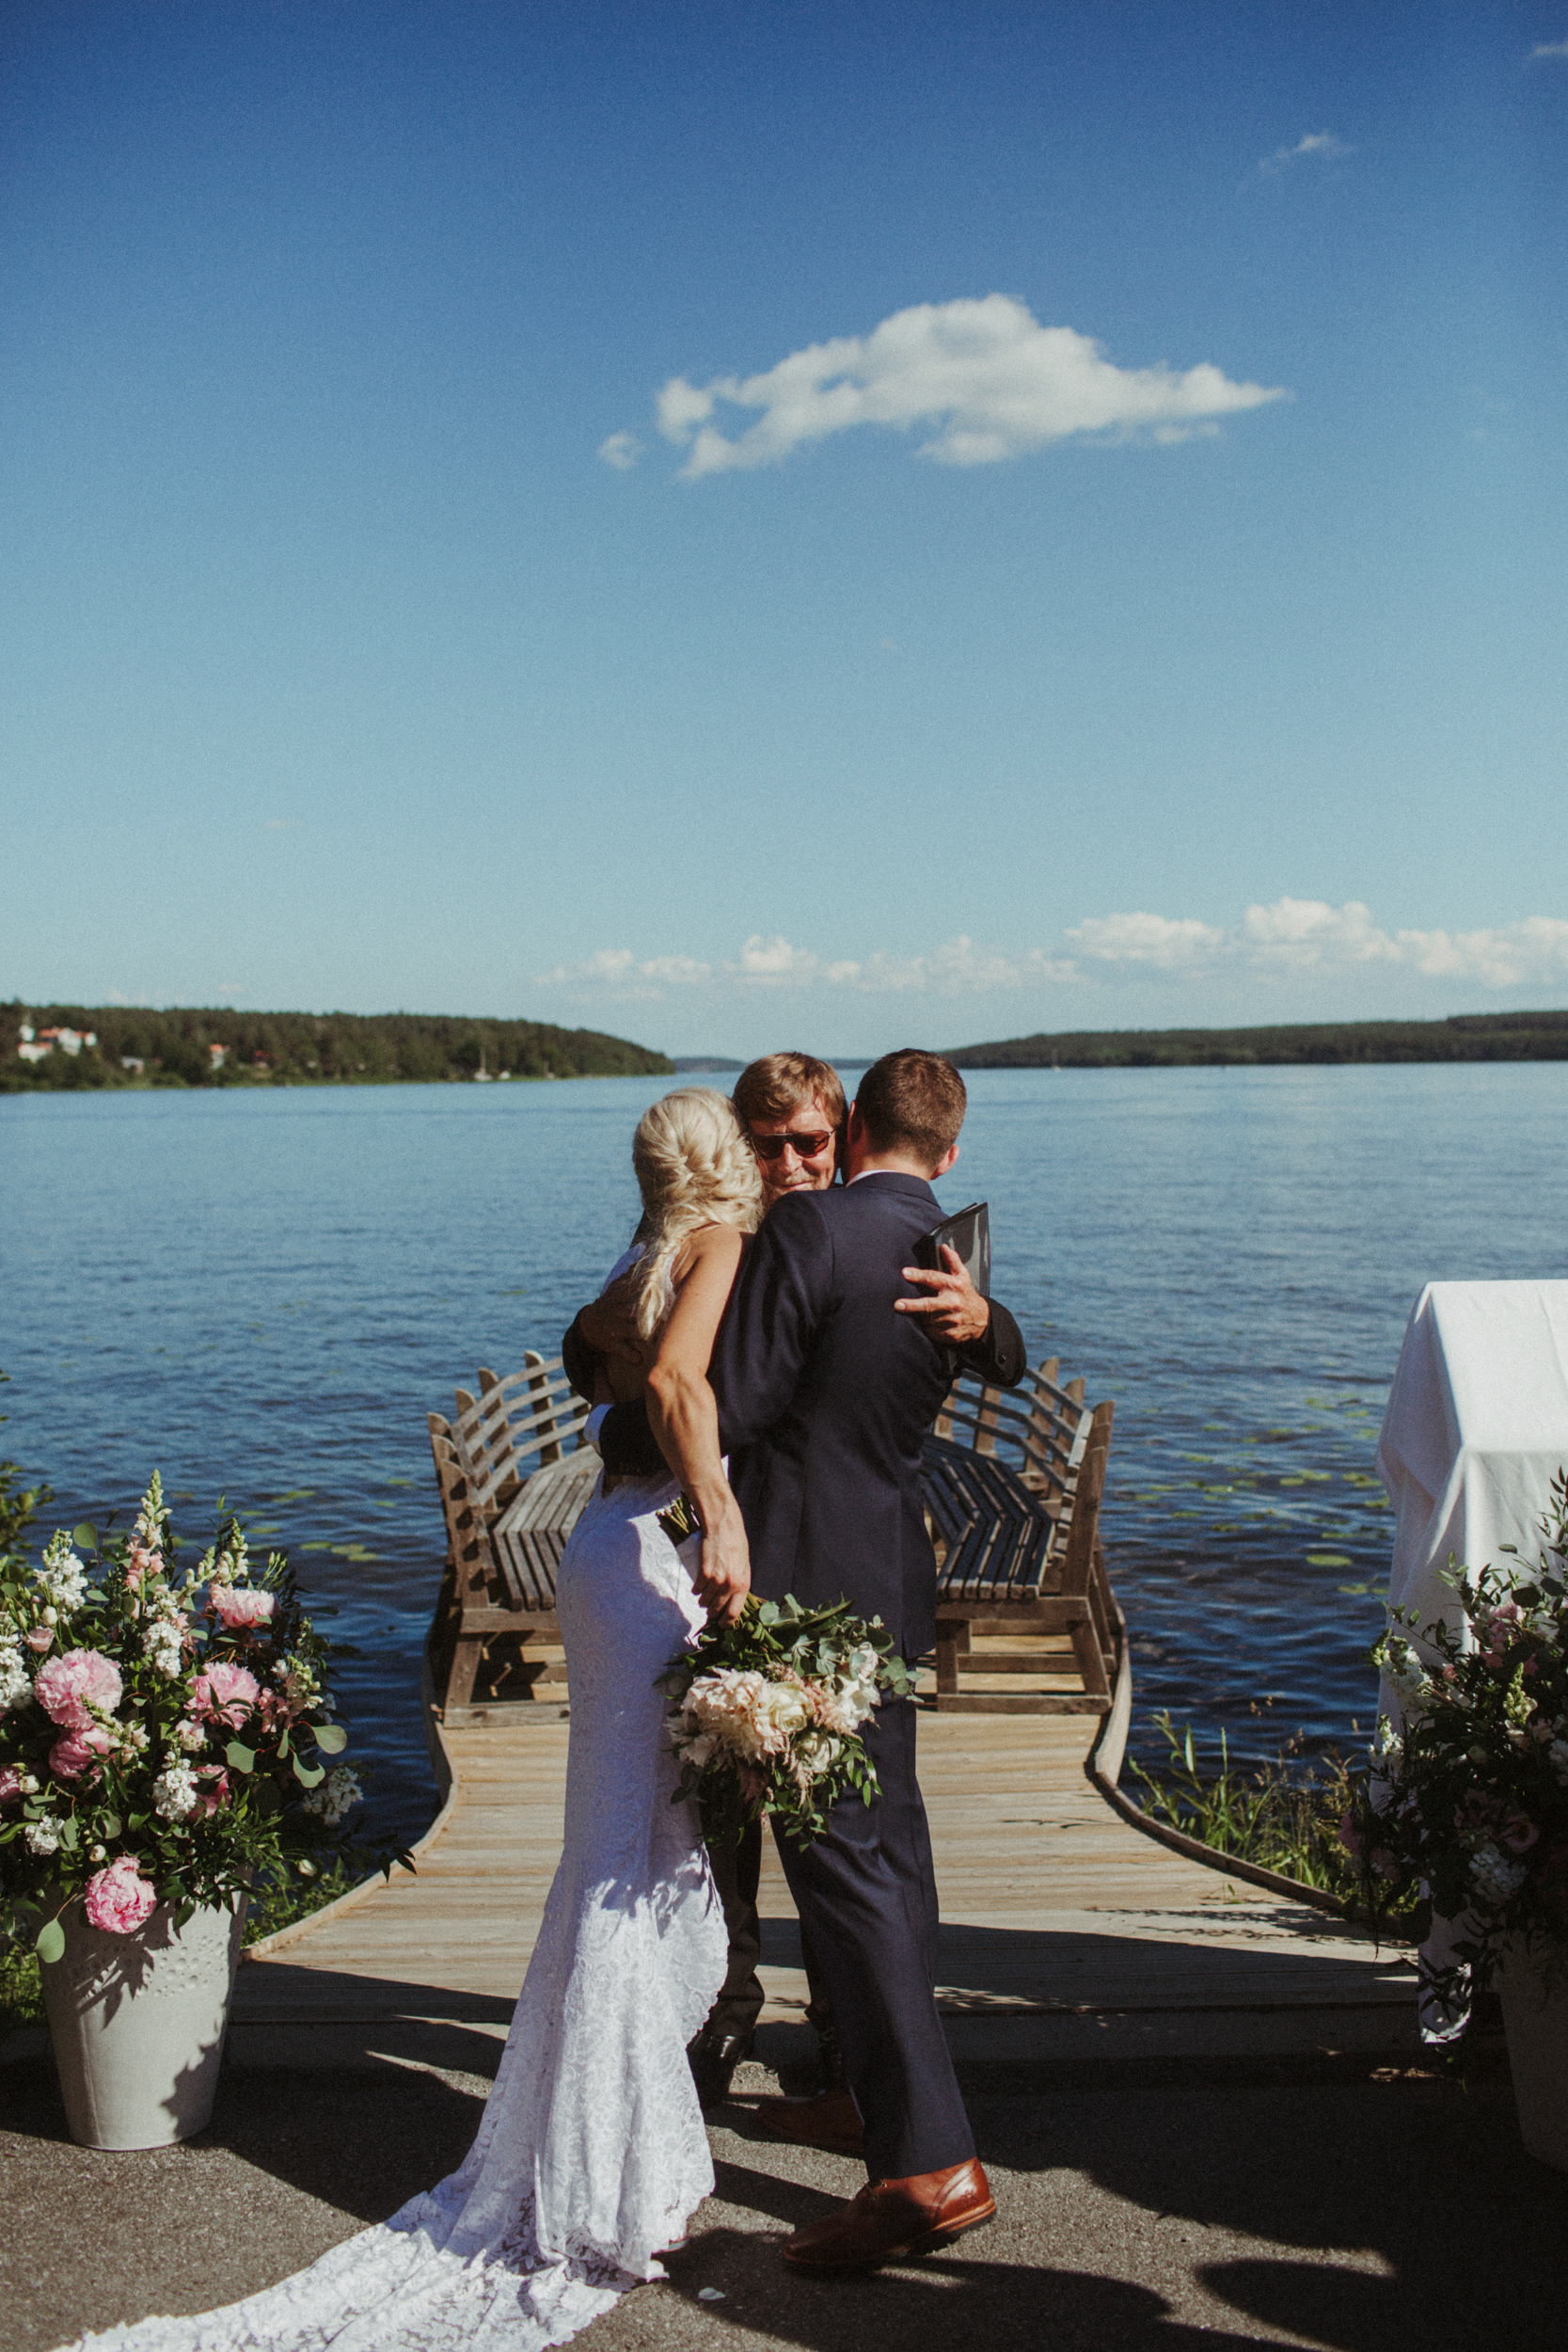 sigtuna-sweden-wedding_m_e-83.jpg